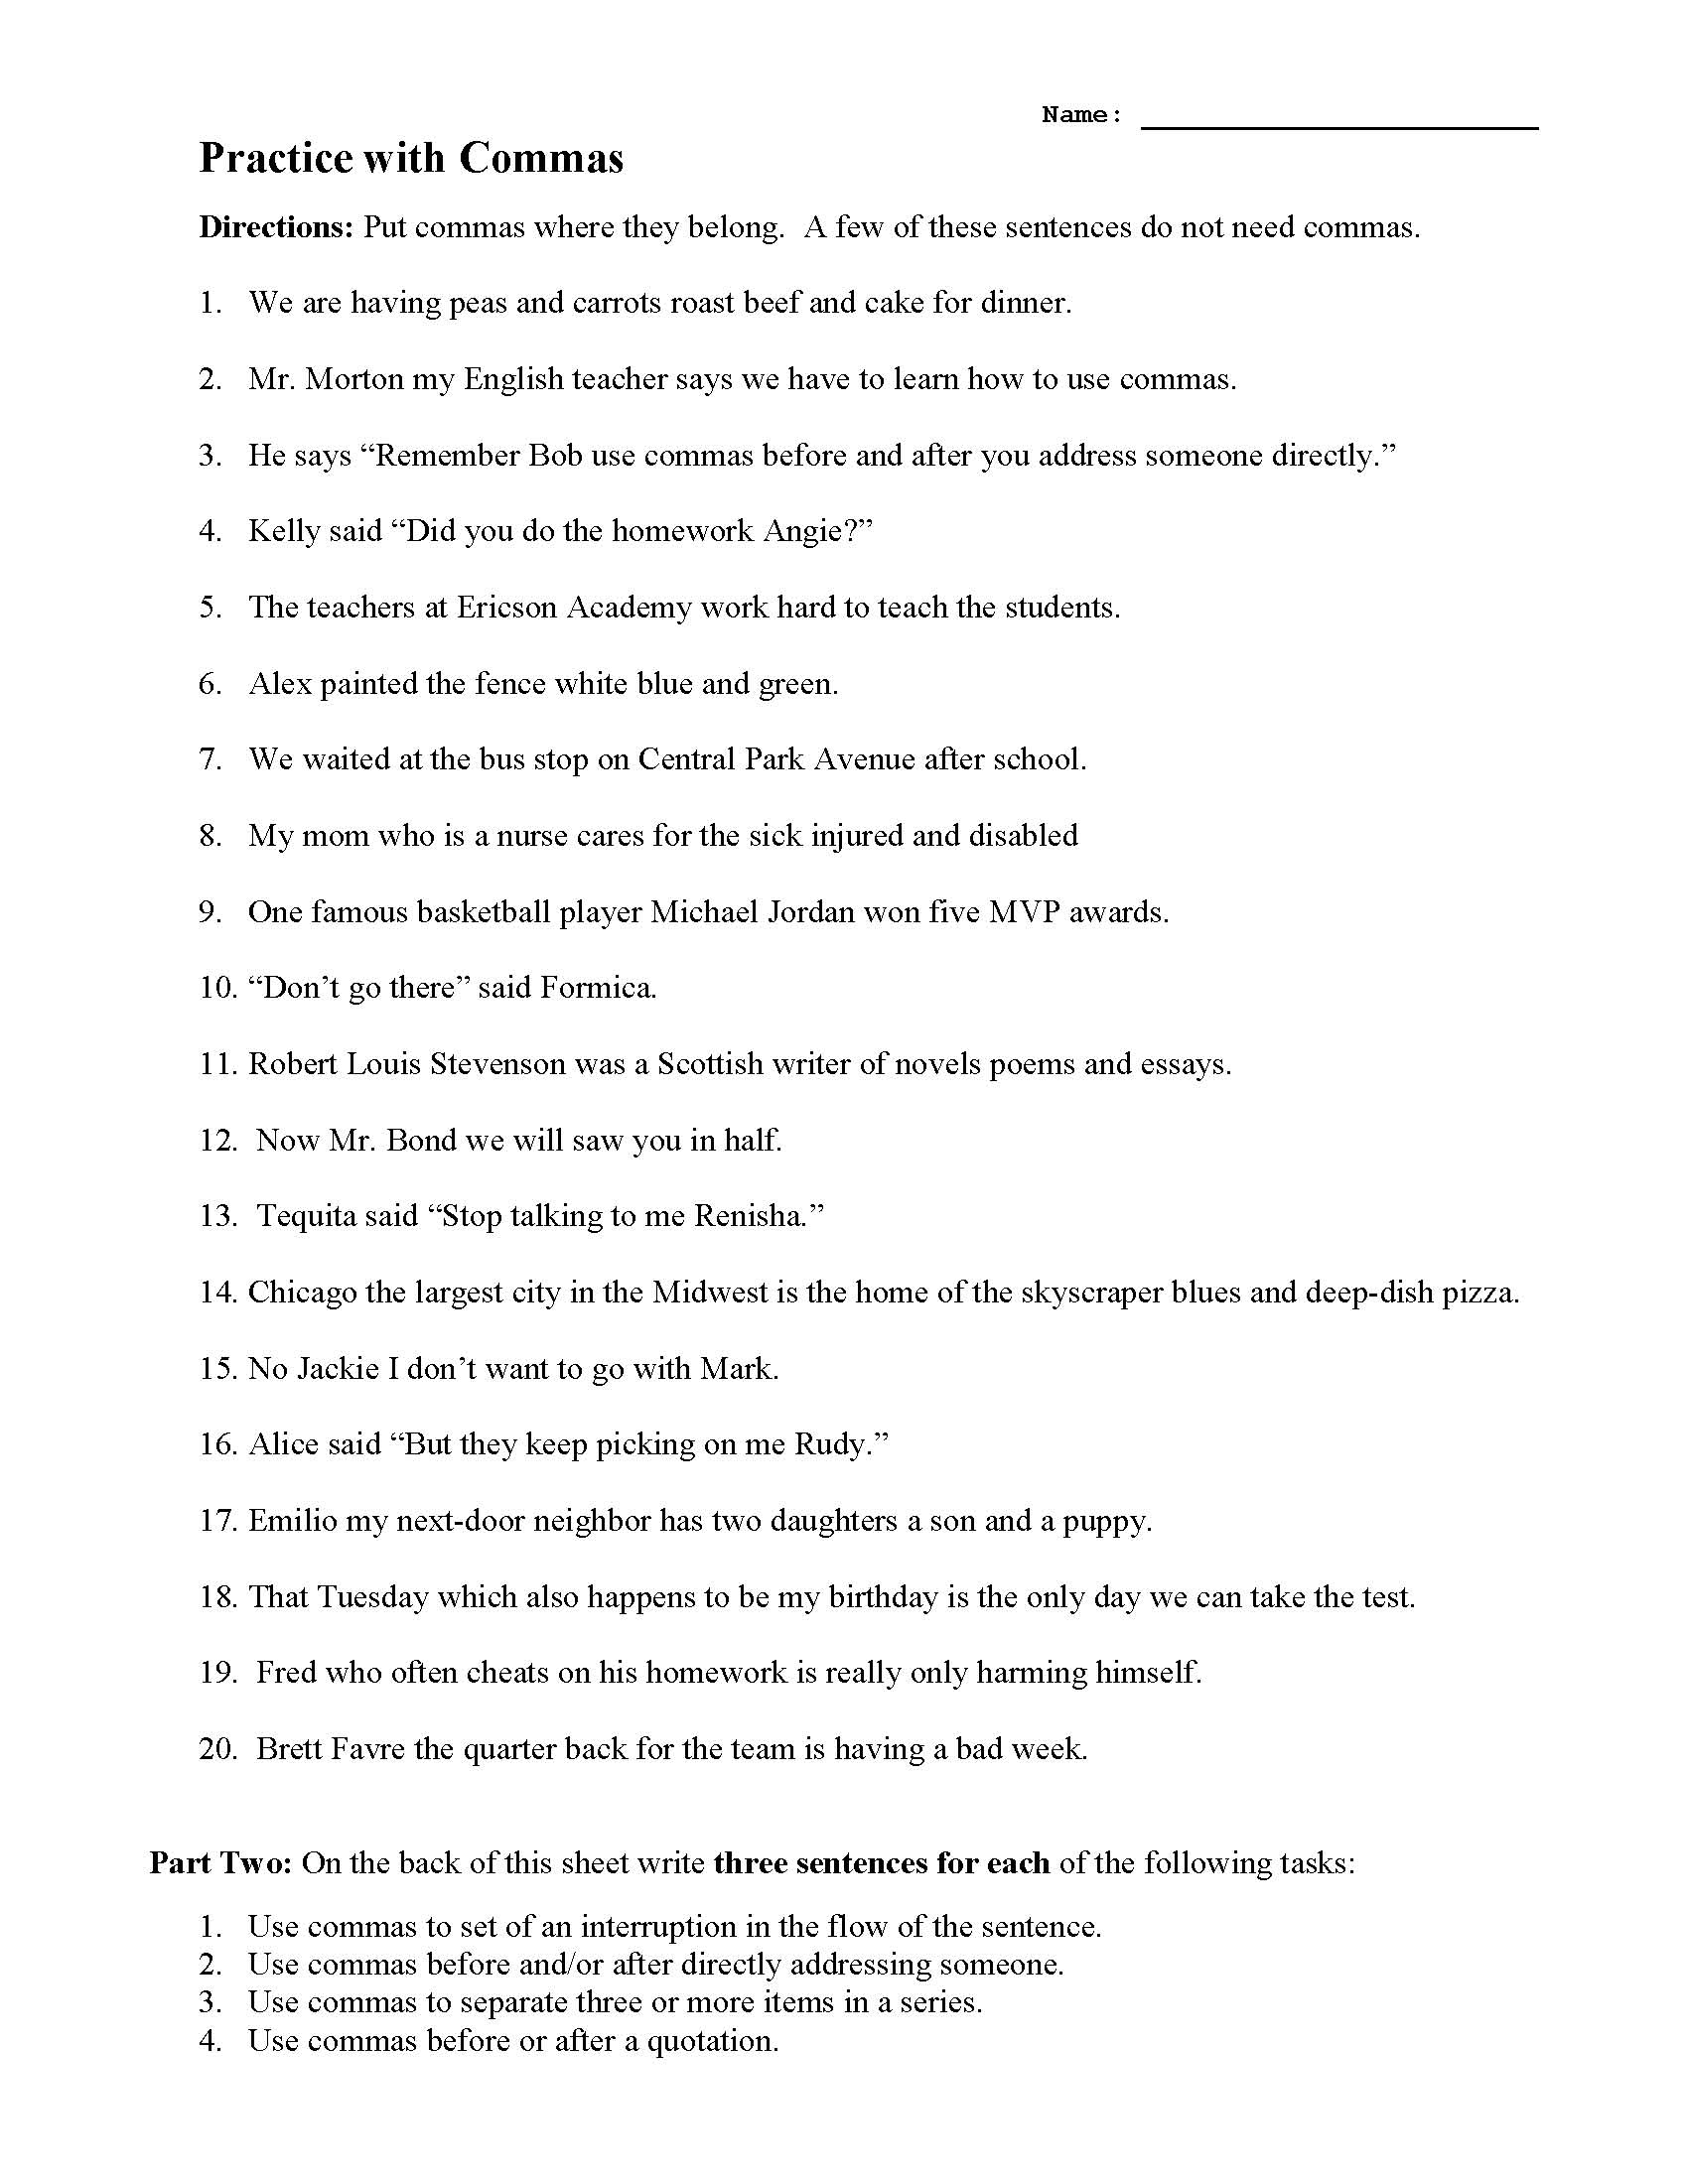 Practice With Commas Preview Punctuation worksheets help familiarize students with the appropriate uses. practice with commas preview